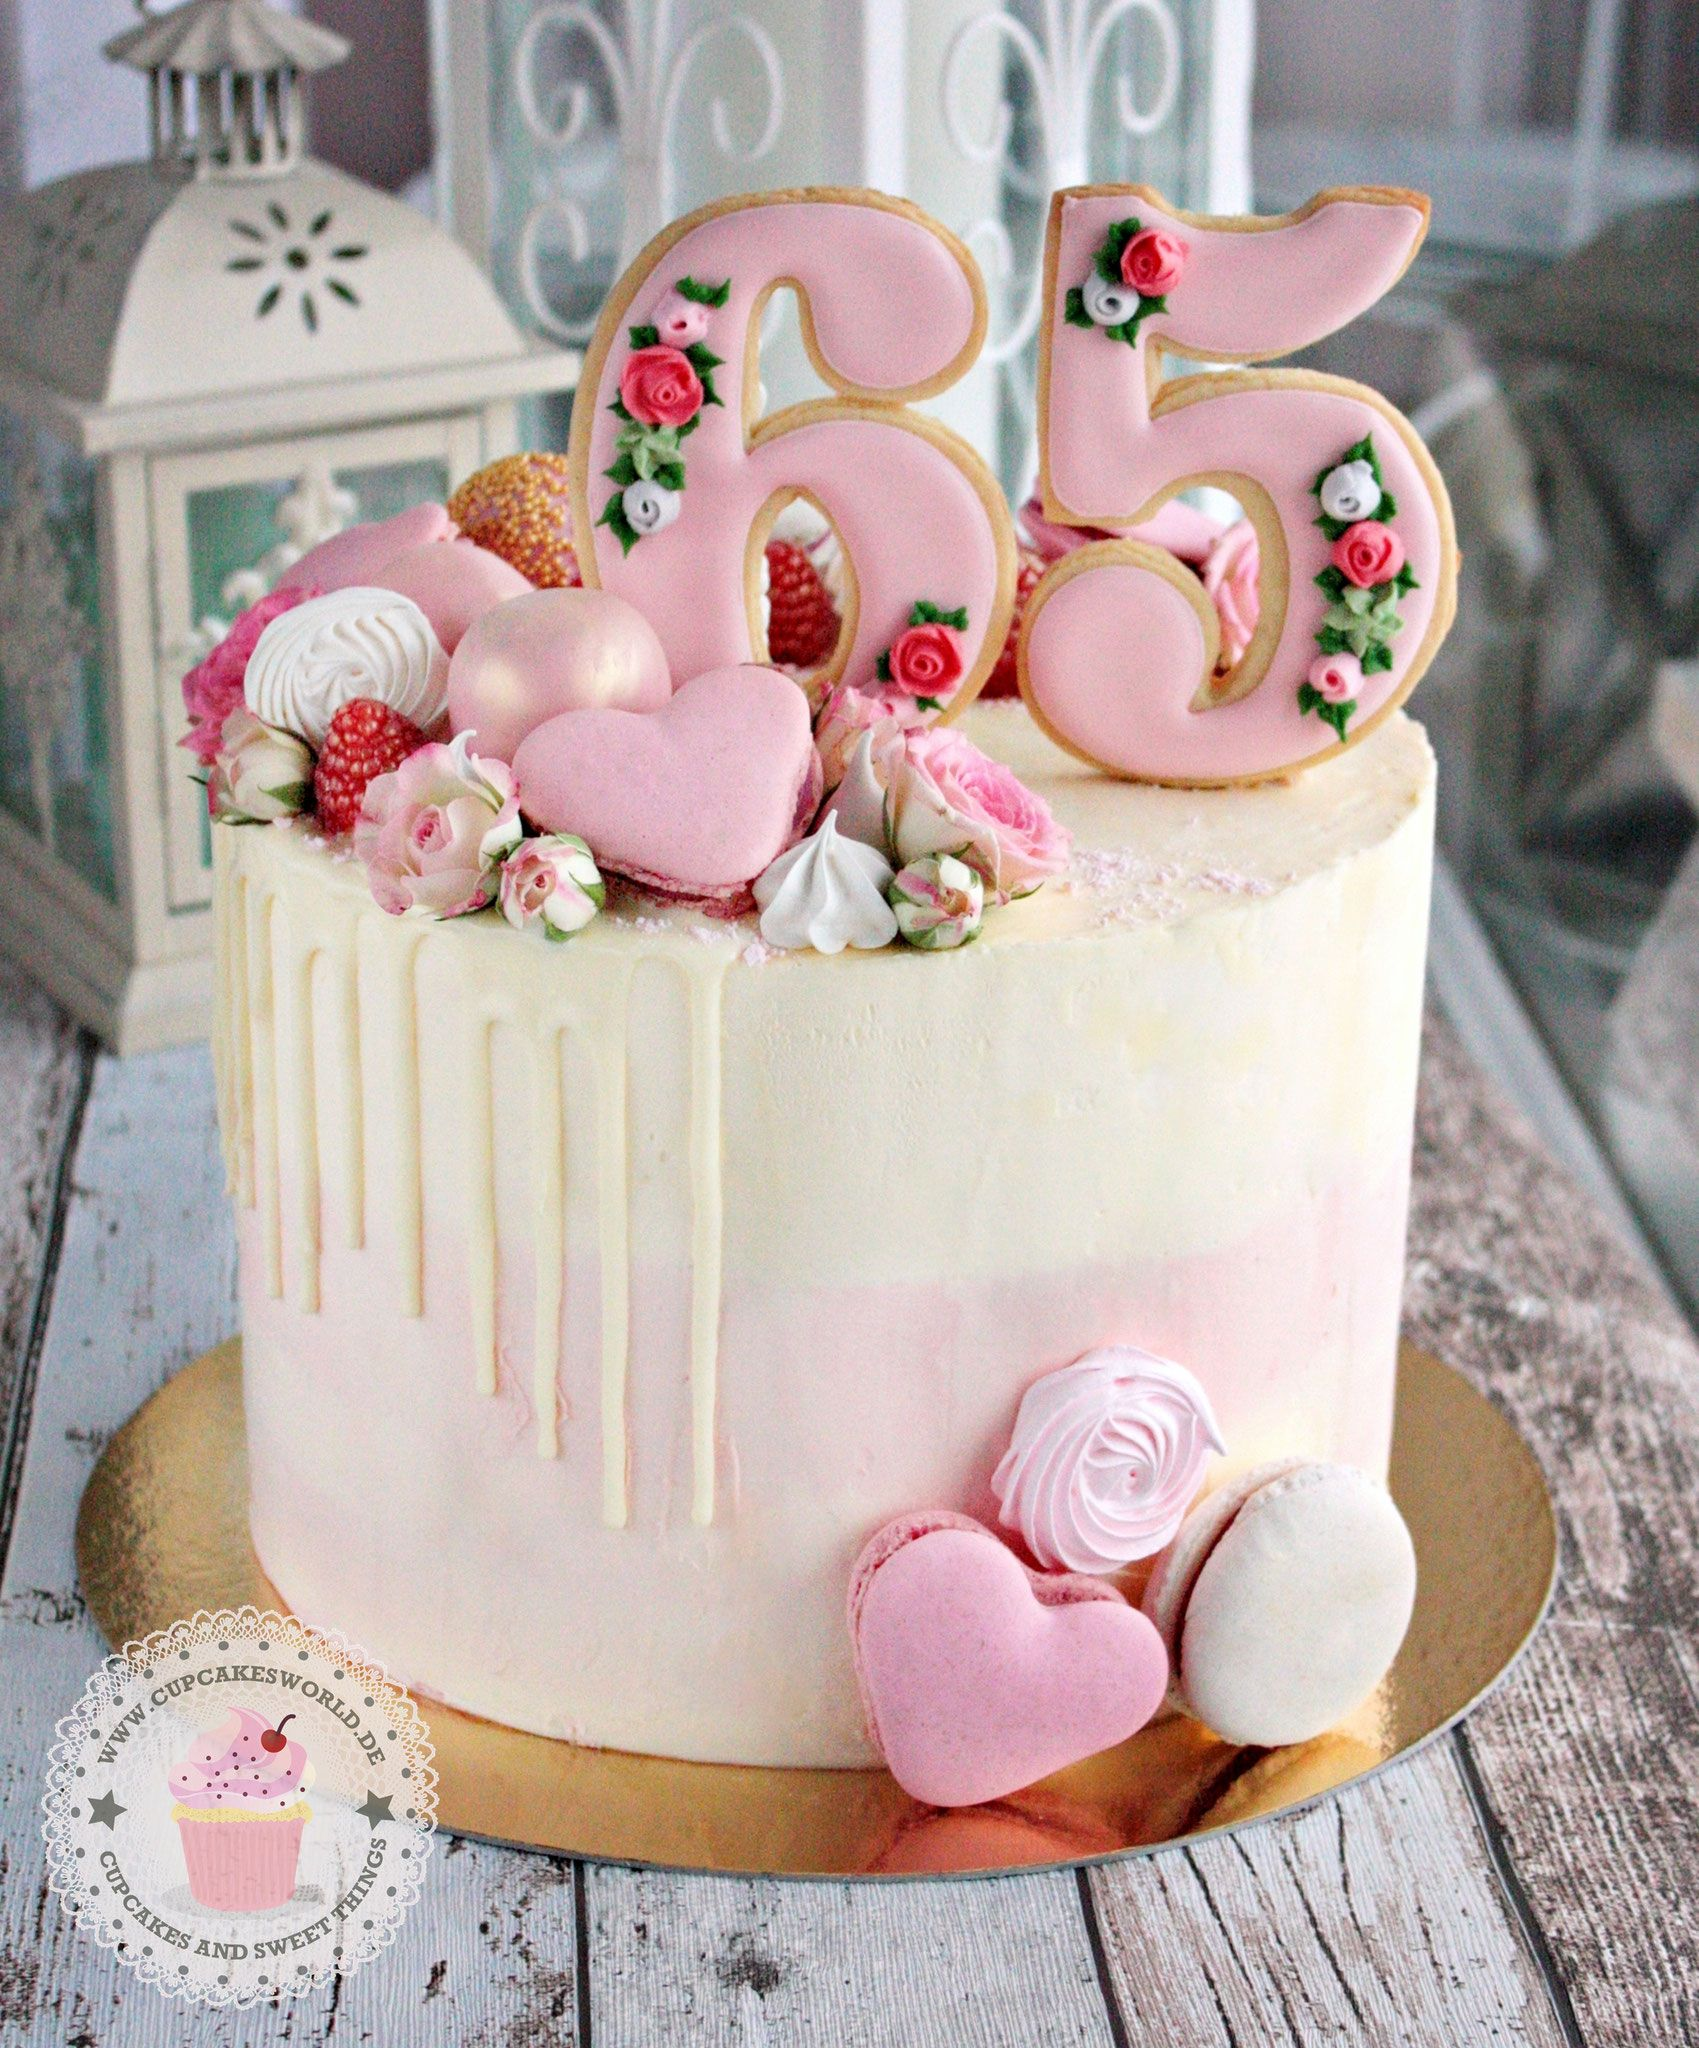 CREMETORTEN - Julia Bärwald #celebrationcakes